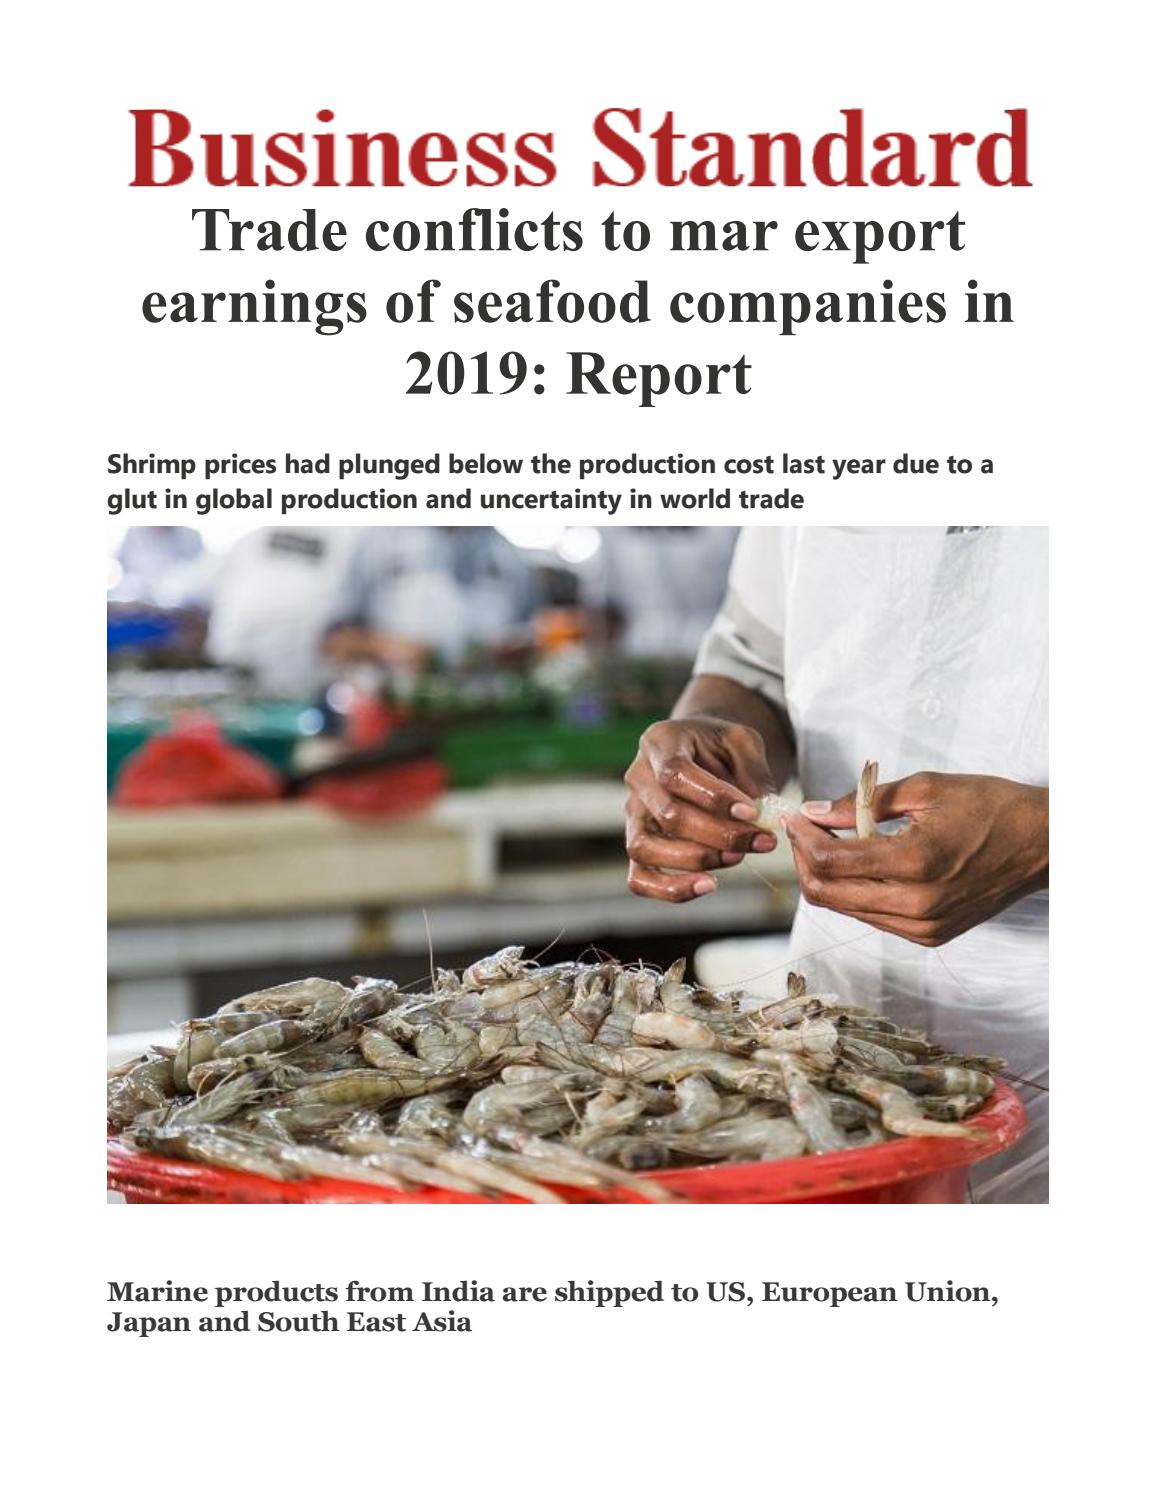 Trade conflicts to mar export earnings of seafood companies in 2019